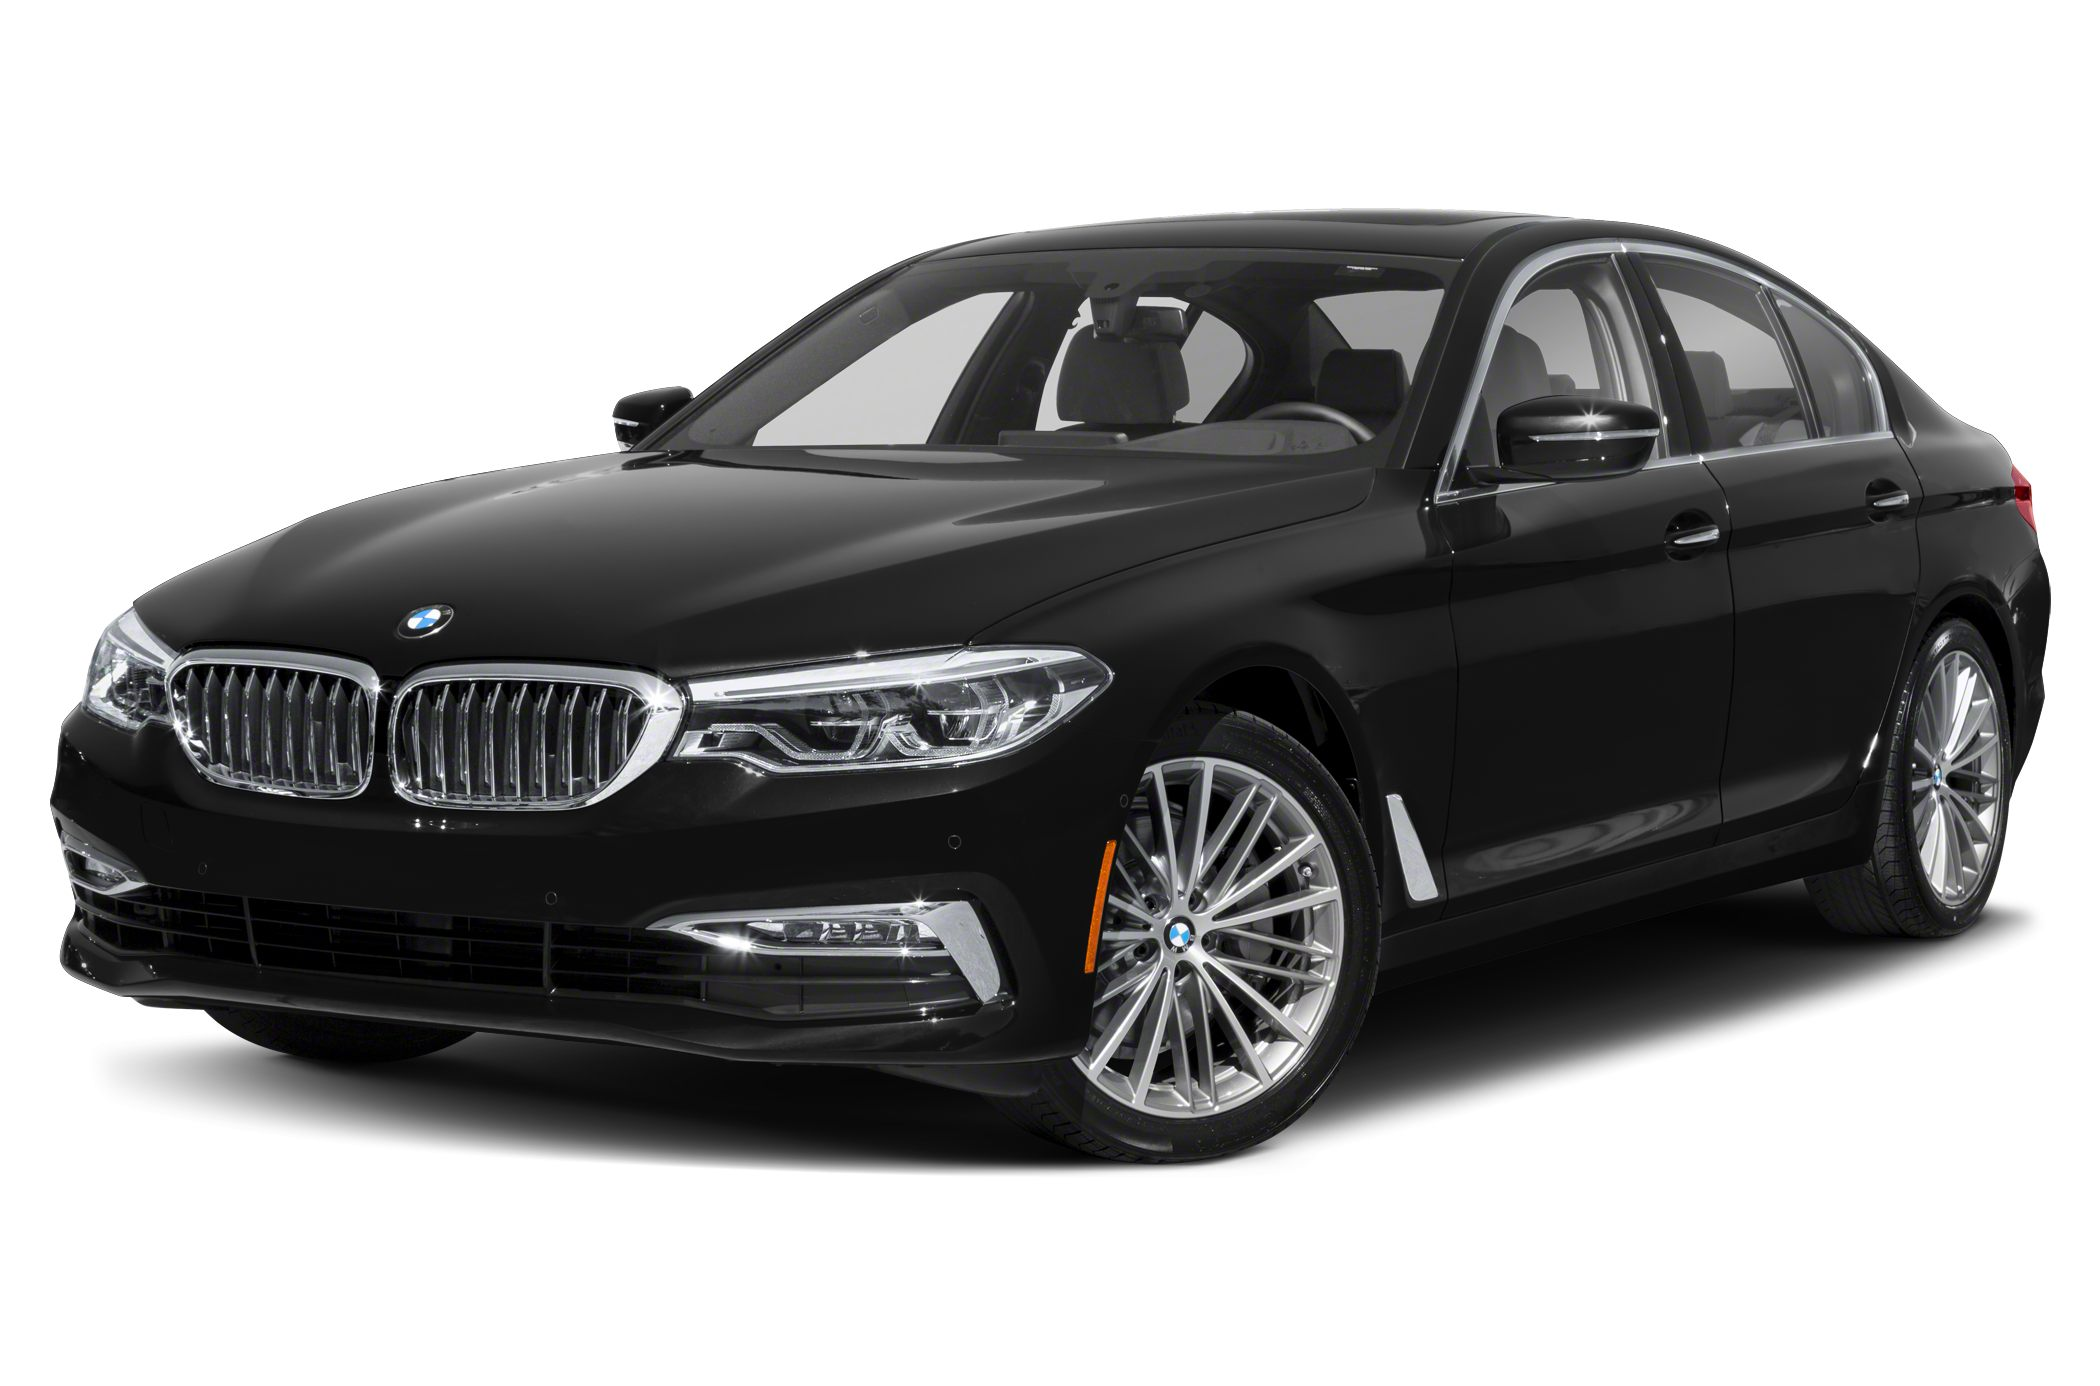 BMW dealers now offering light-up kidney grilles for 5 Series